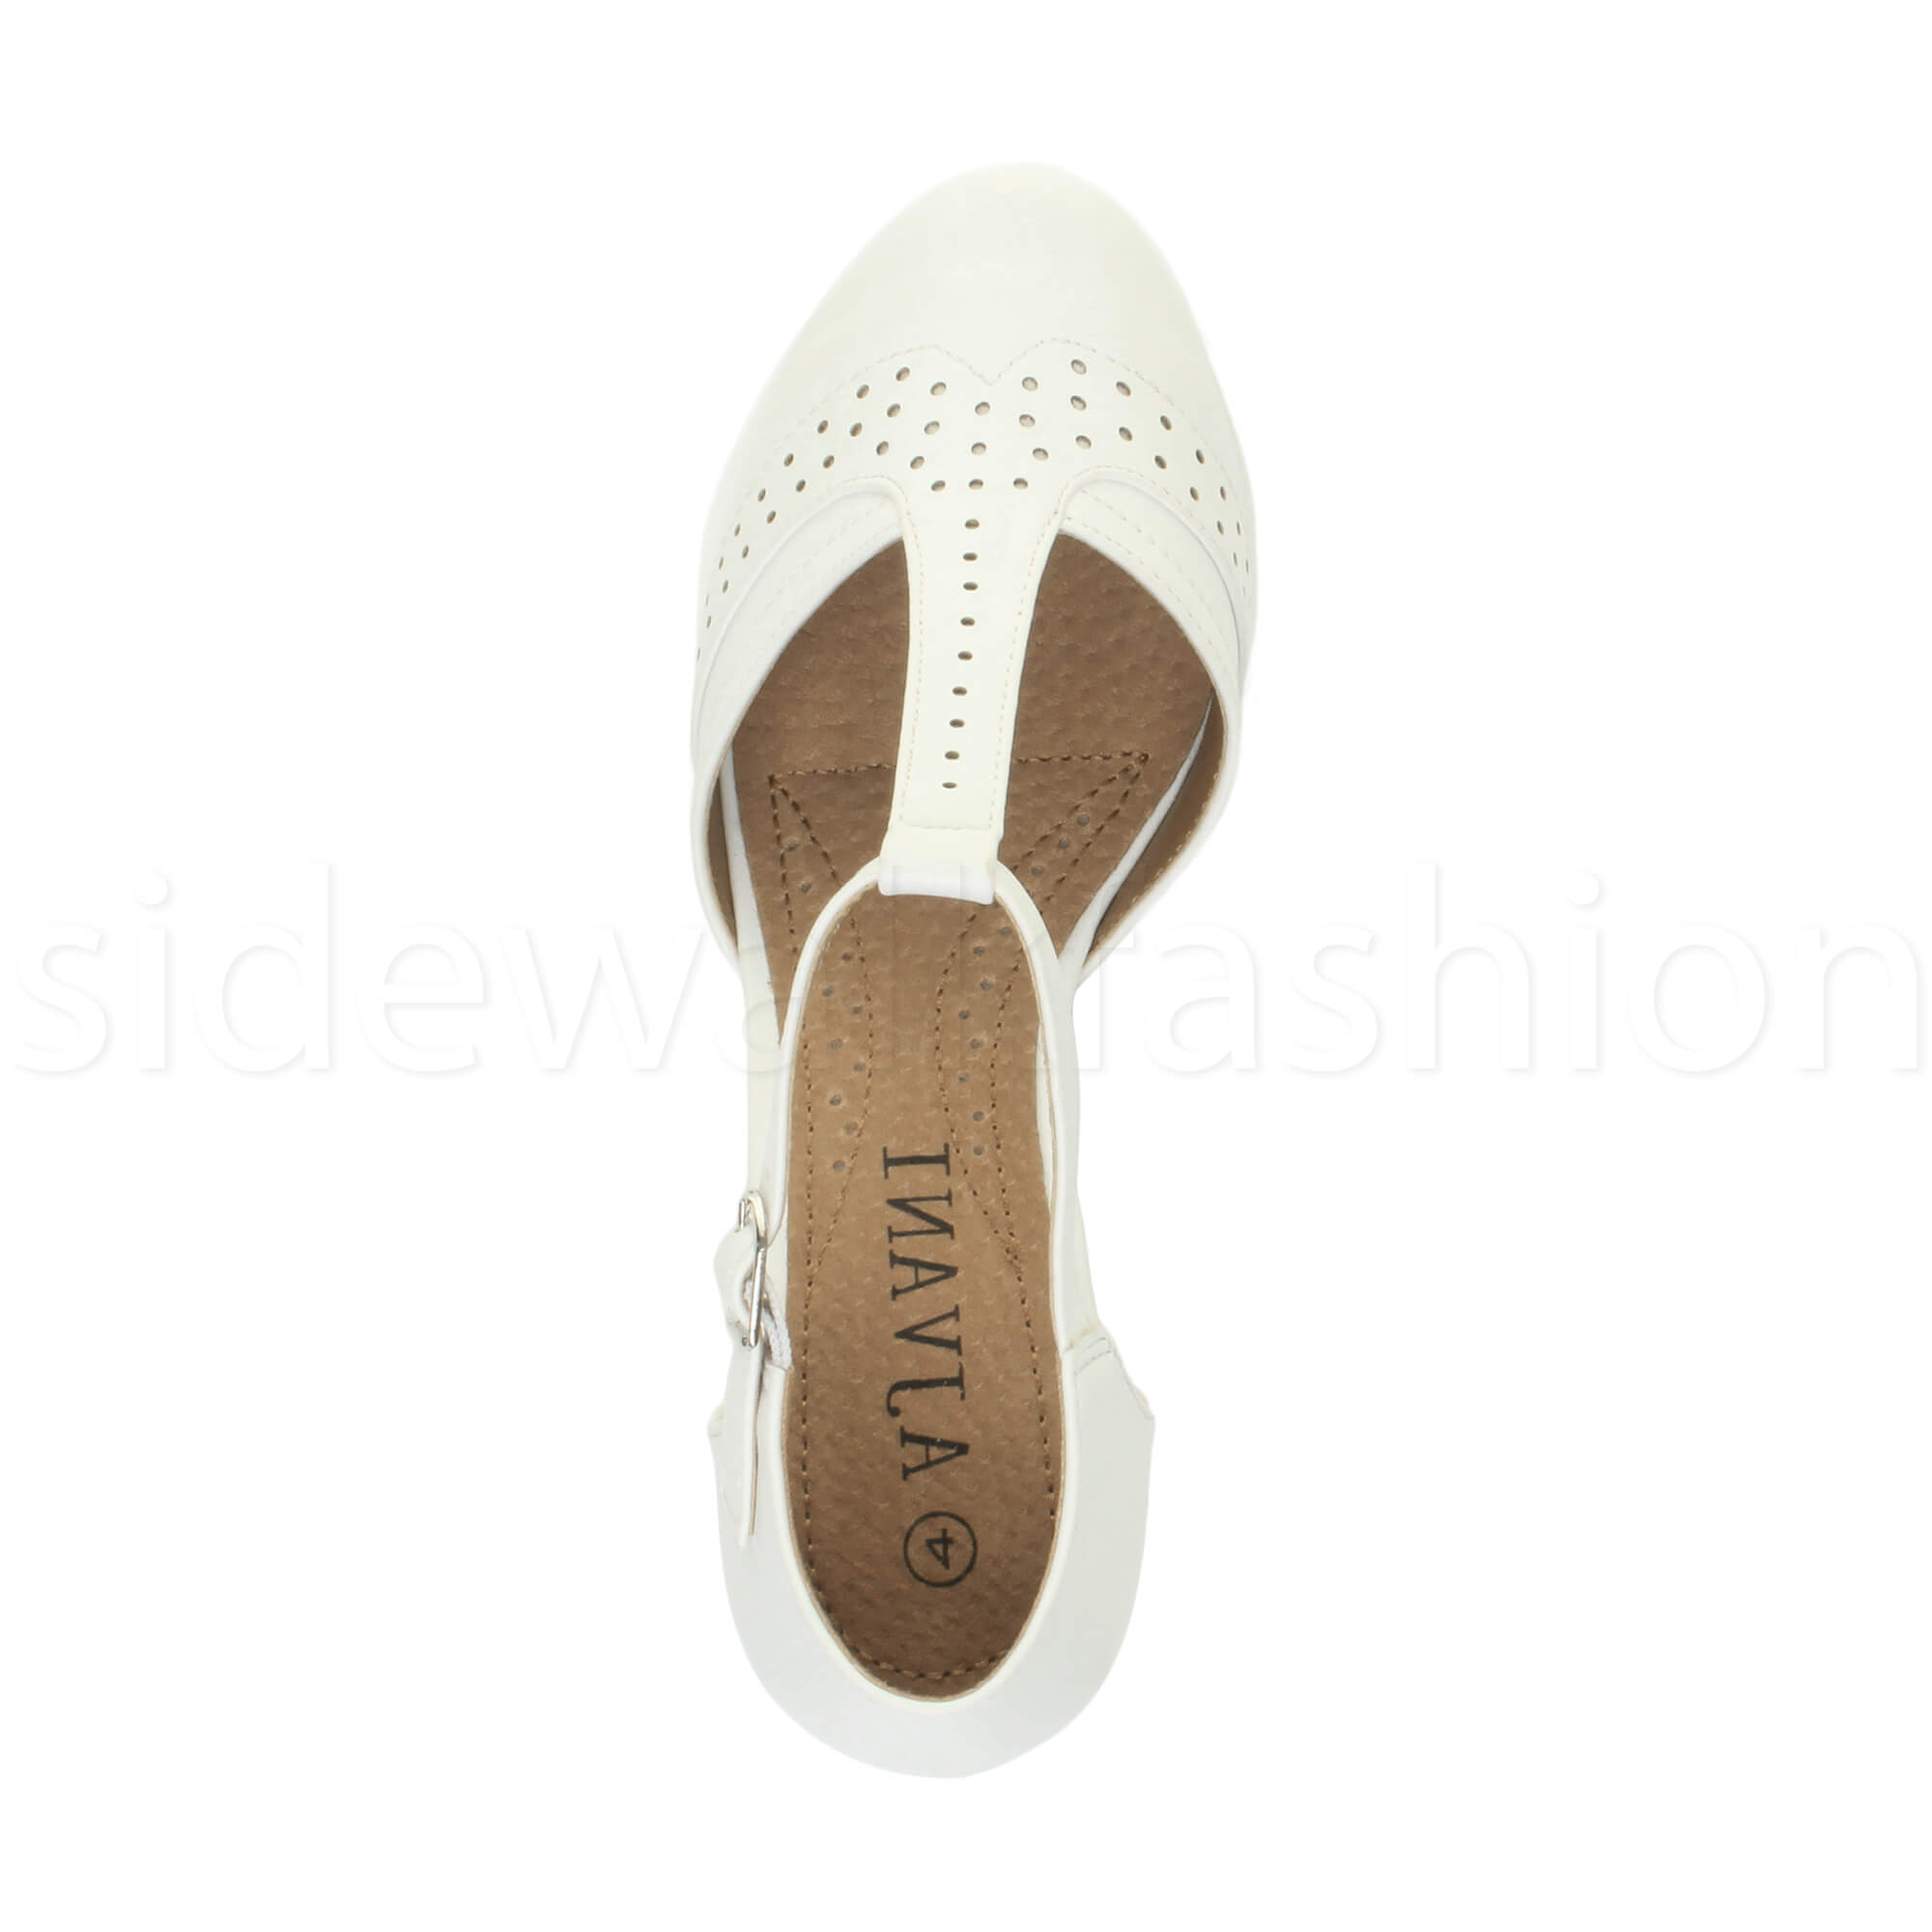 Womens-ladies-block-low-mid-heel-smart-work-Mary-Jane-T-bar-brogue-court-shoes thumbnail 83